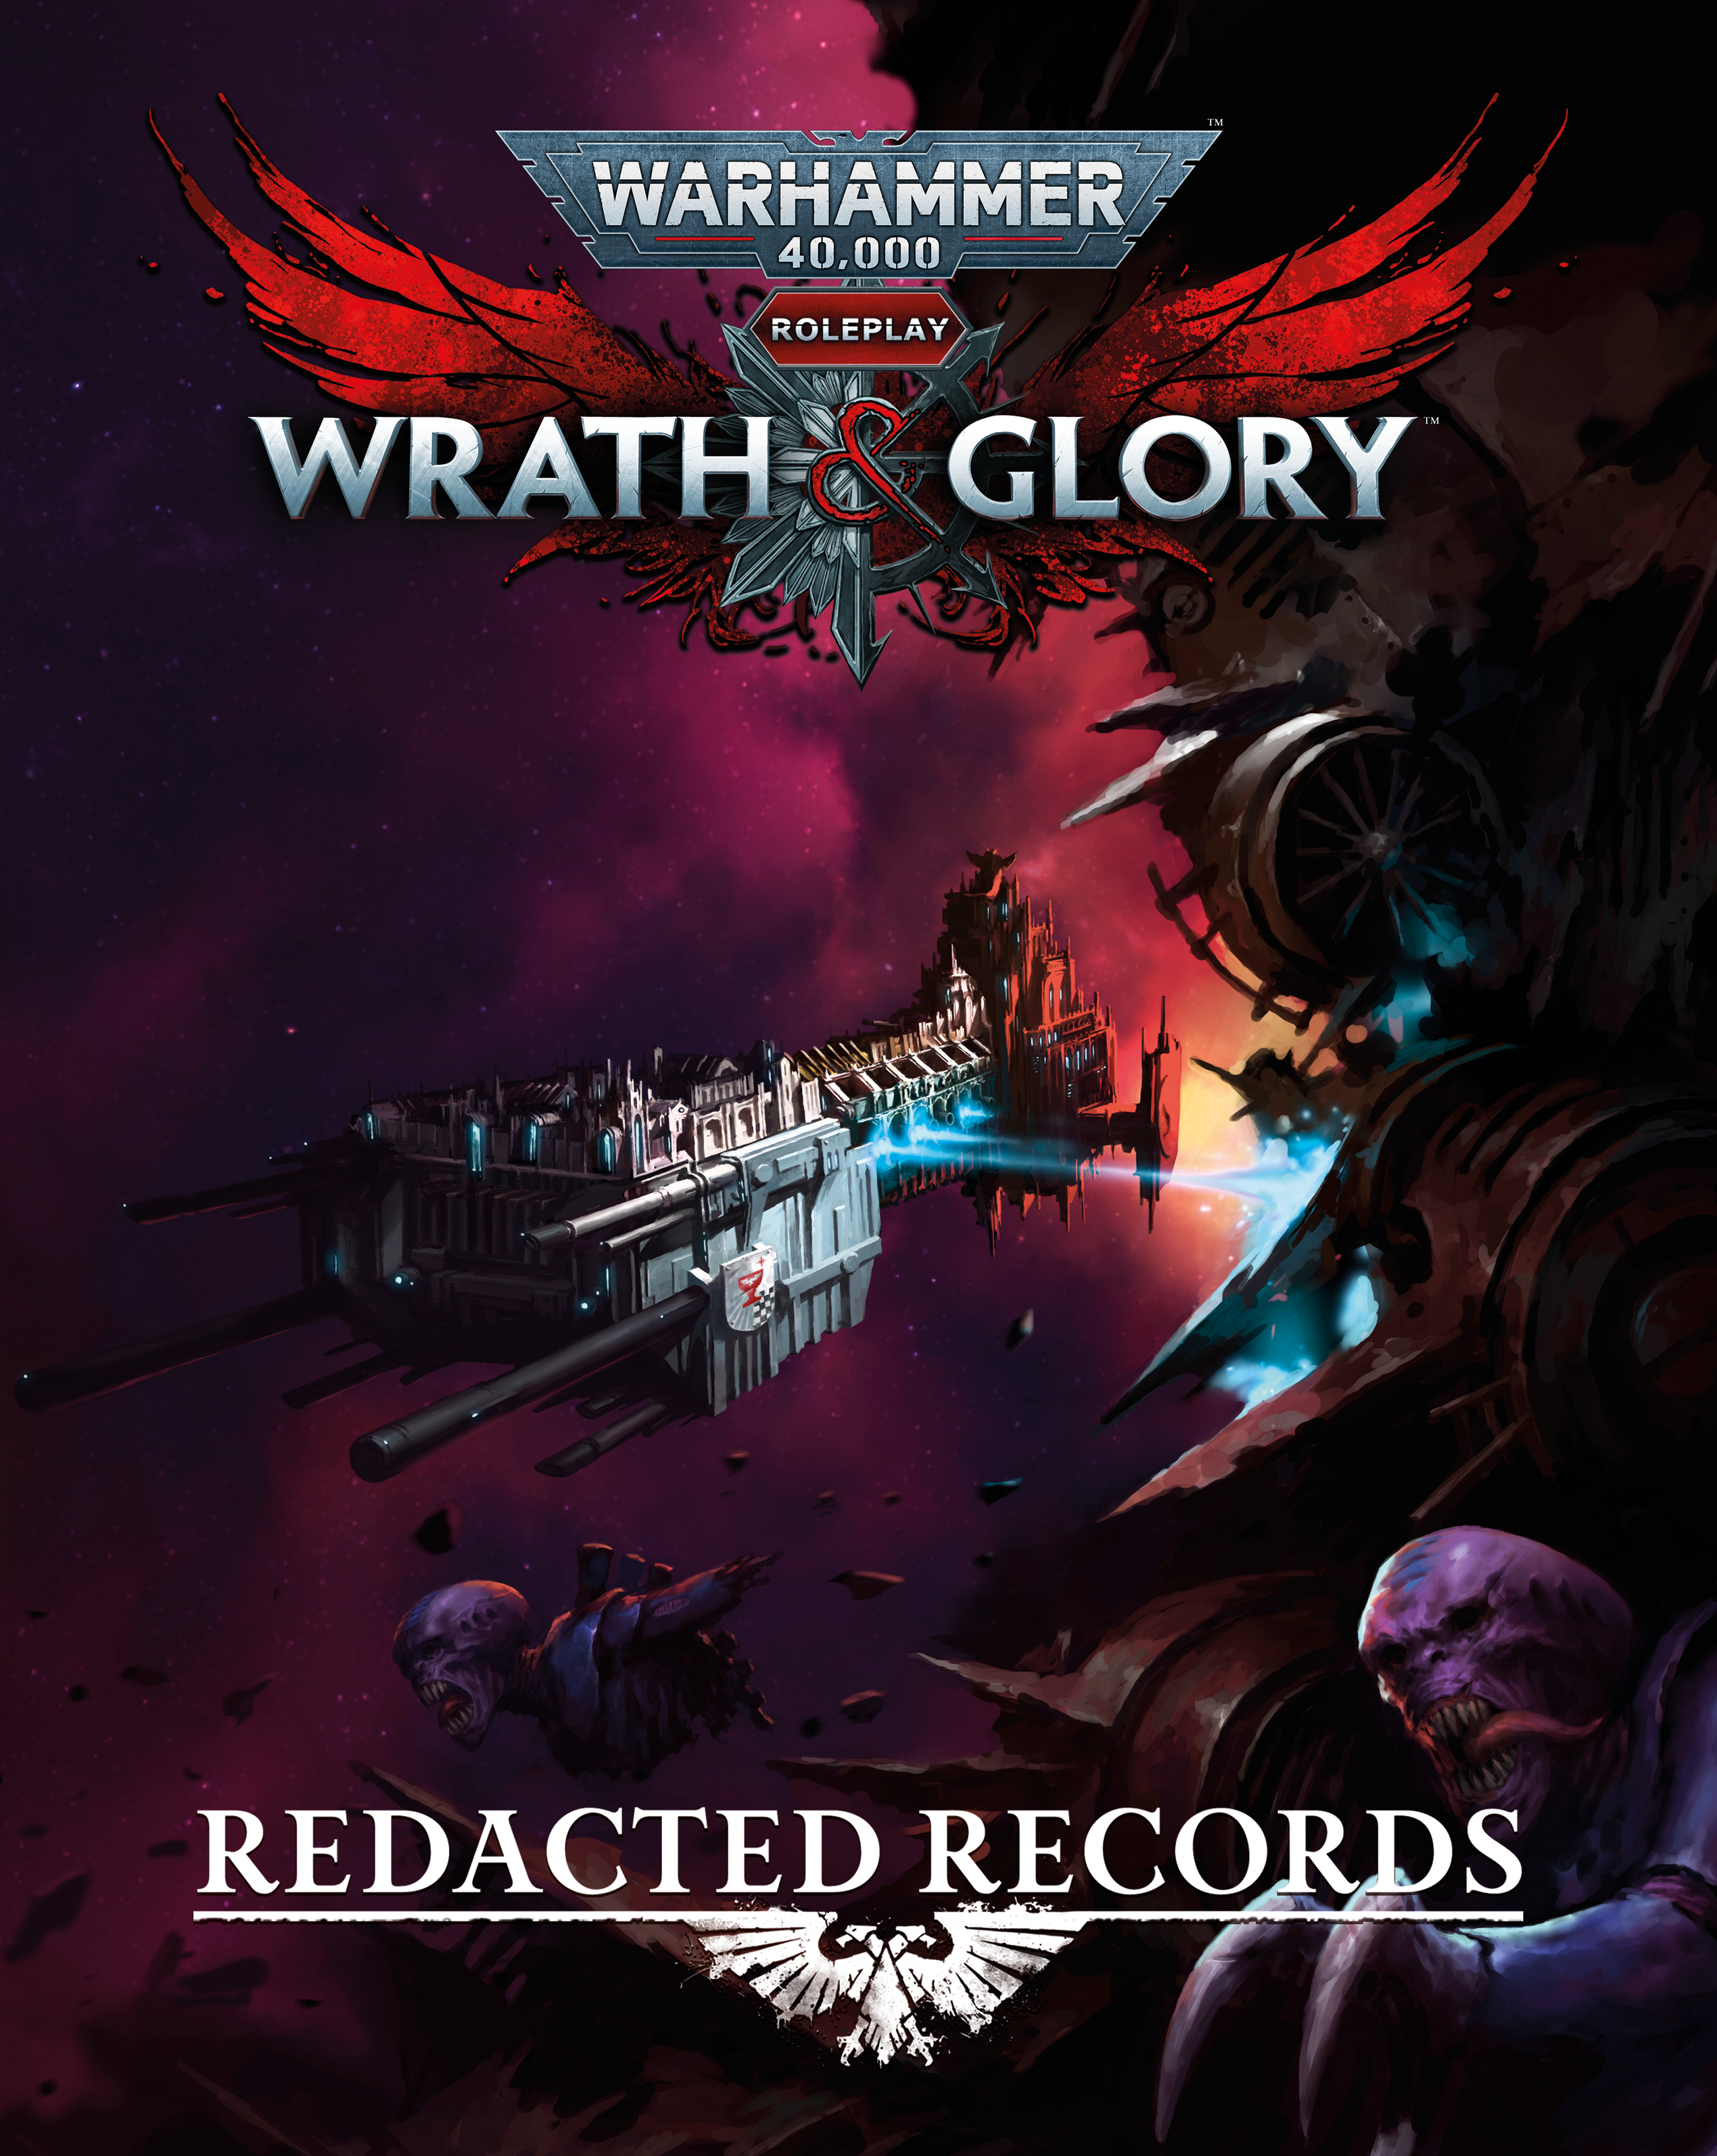 Wrath & Glory Redacted Records - Cubicle 7